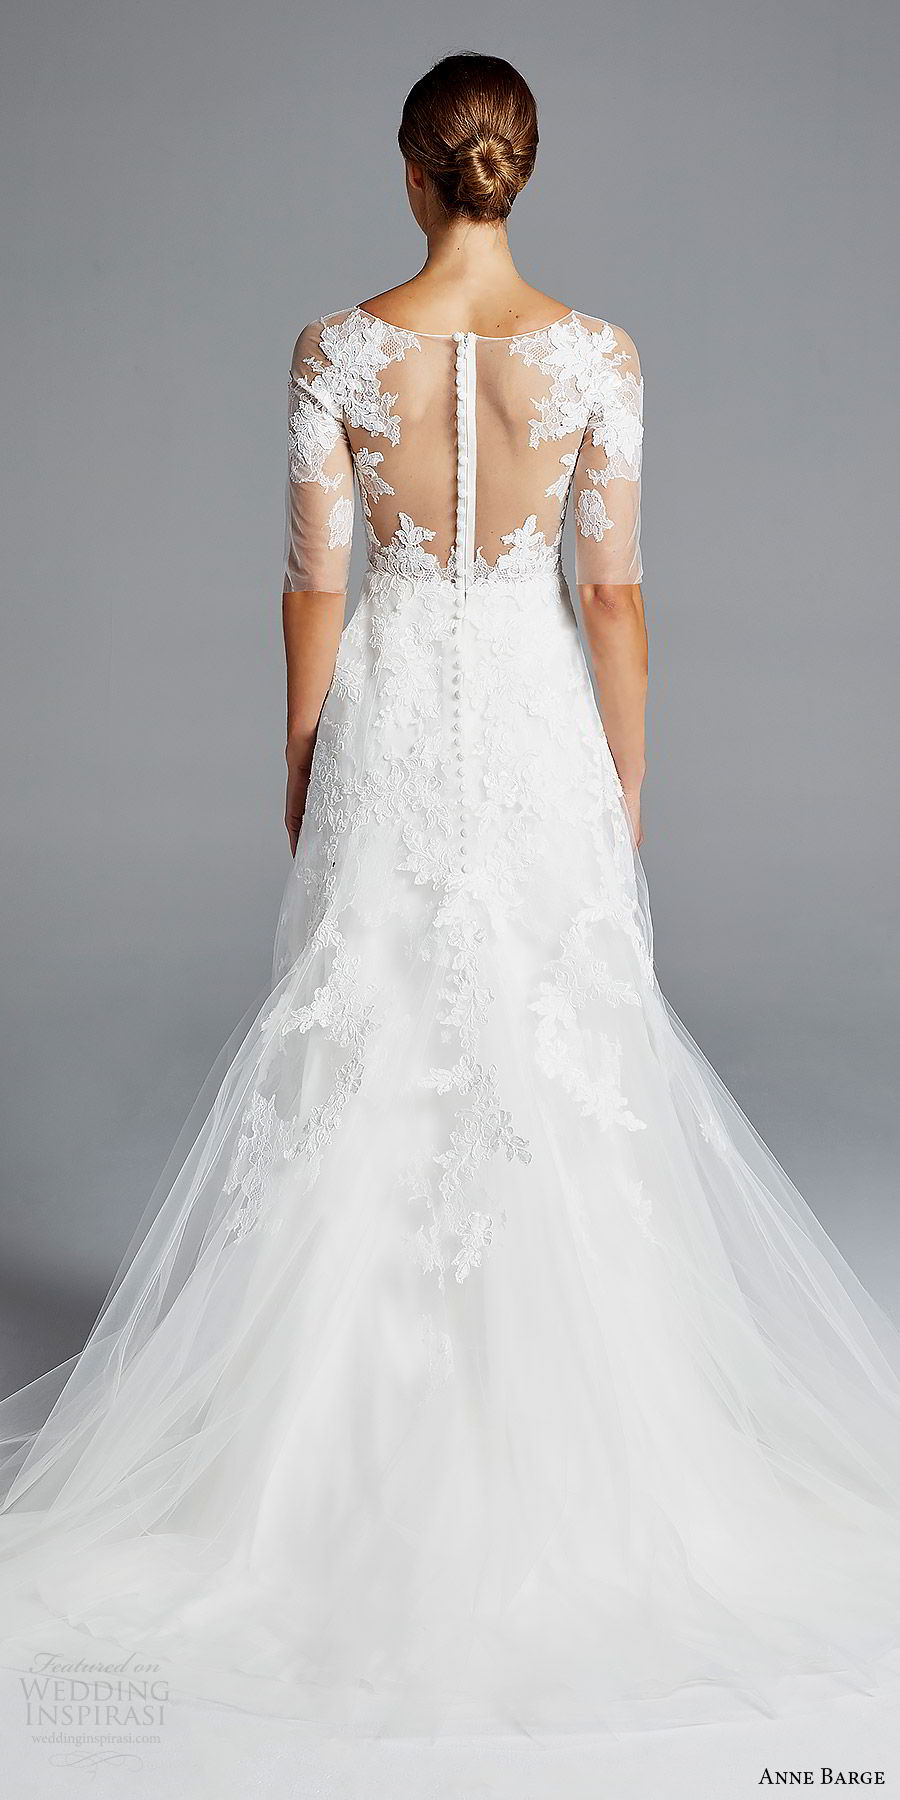 anne barge bridal spring 2019 3 quarter illusion sleeves sheer bateau neck sweetheart lace bodice a line wedding dress (rossallini) bv romantic elegant illusion back chapel train